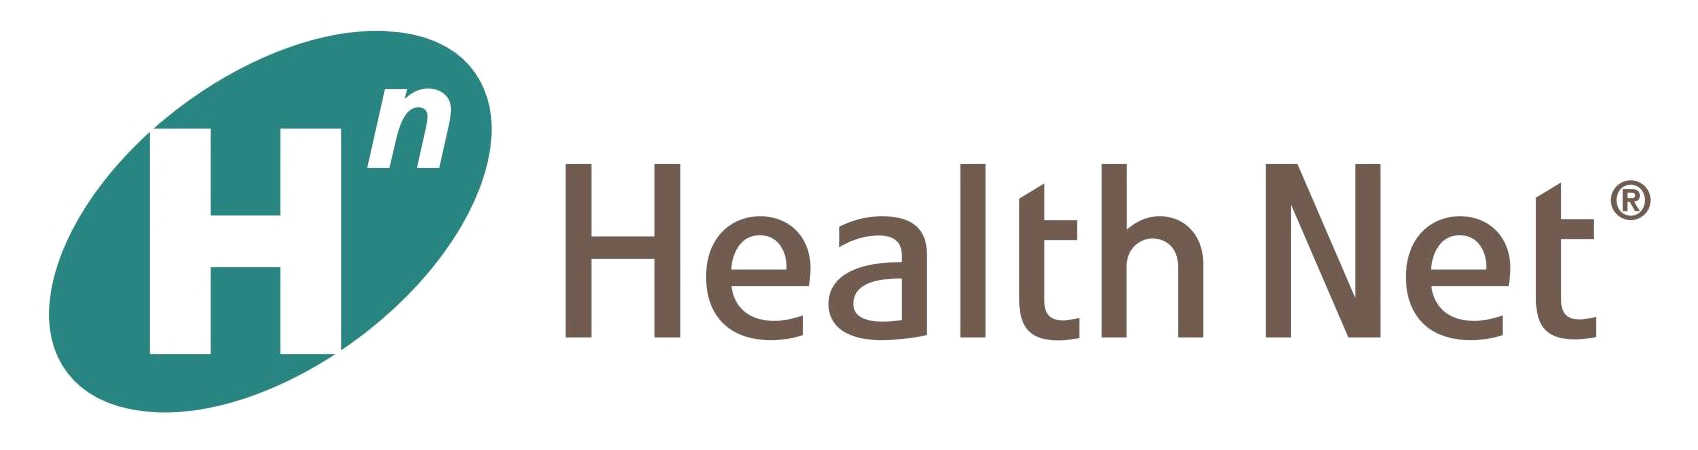 In stock png. Health net logo transparent